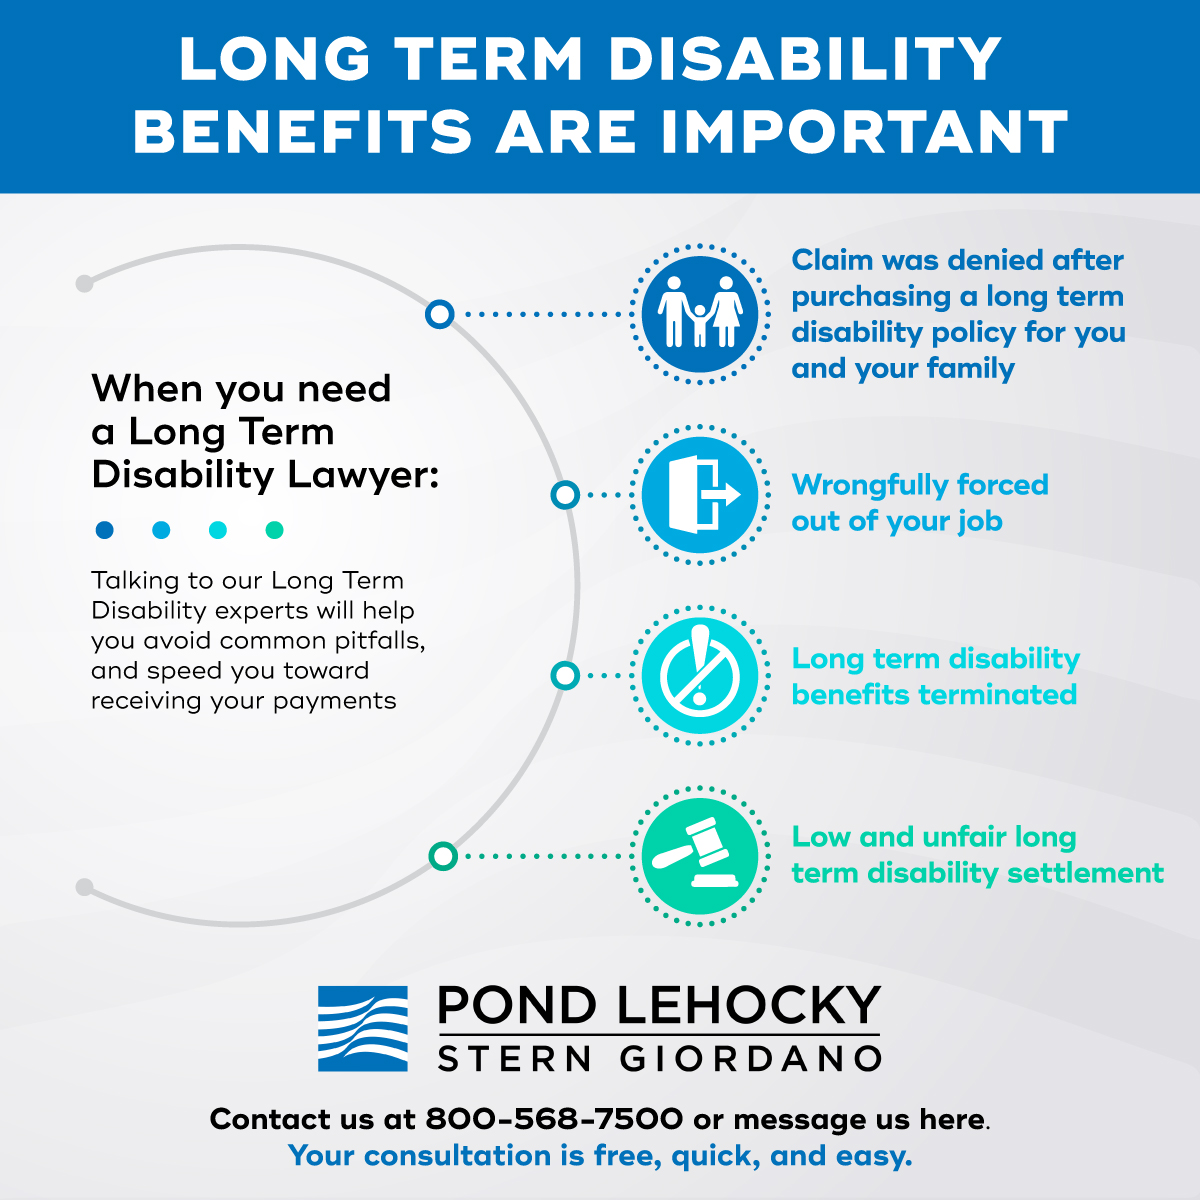 Our Long-Term Disability Experts Can Help You With Your Long-Term Disability  Matter. Fill Out The Contact Form Below For A Quick And Free Case  Evaluation.